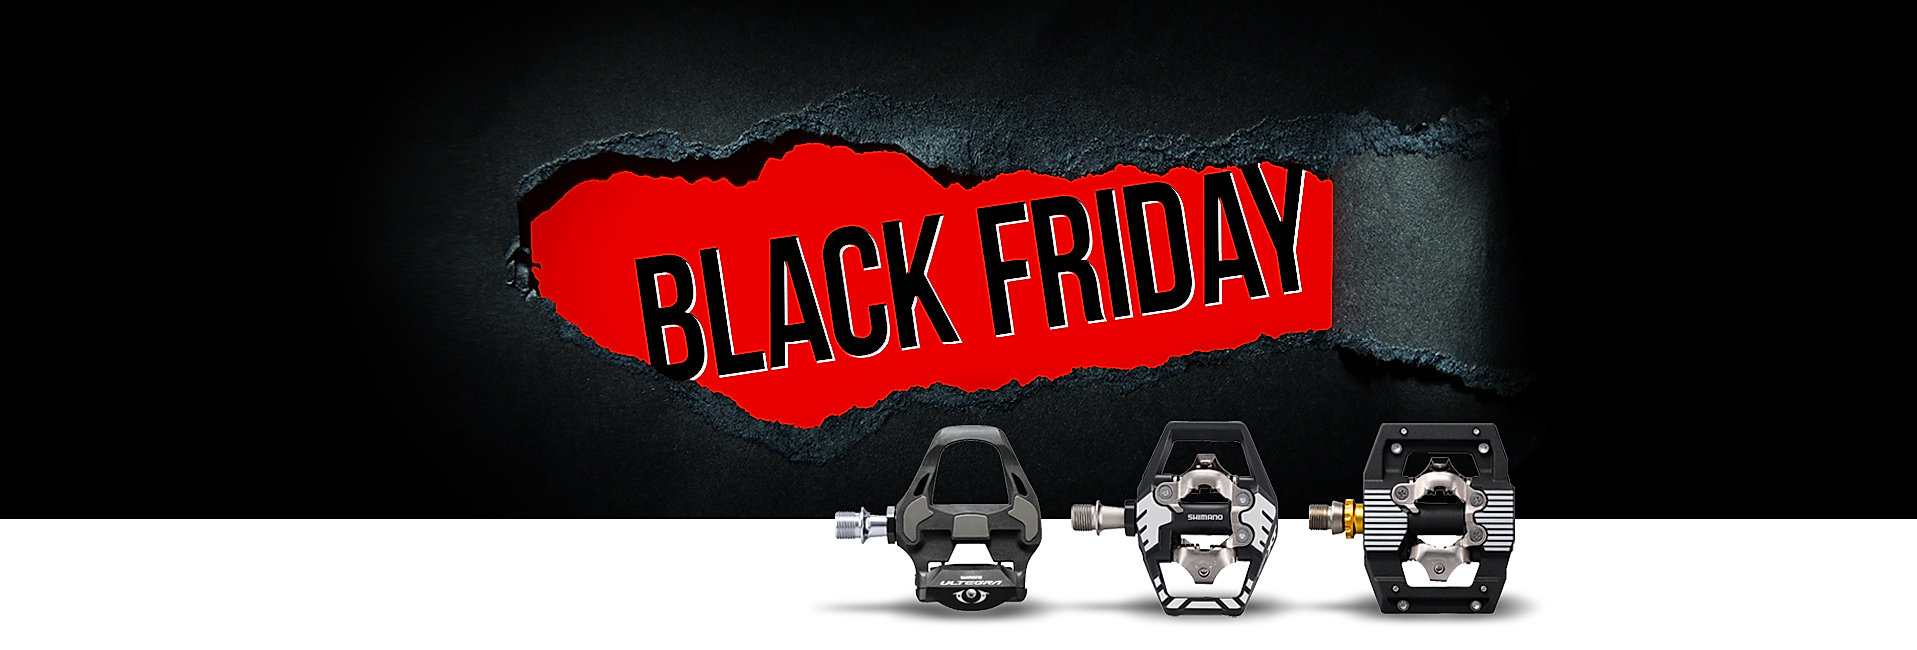 cover pedals black friday.jpg